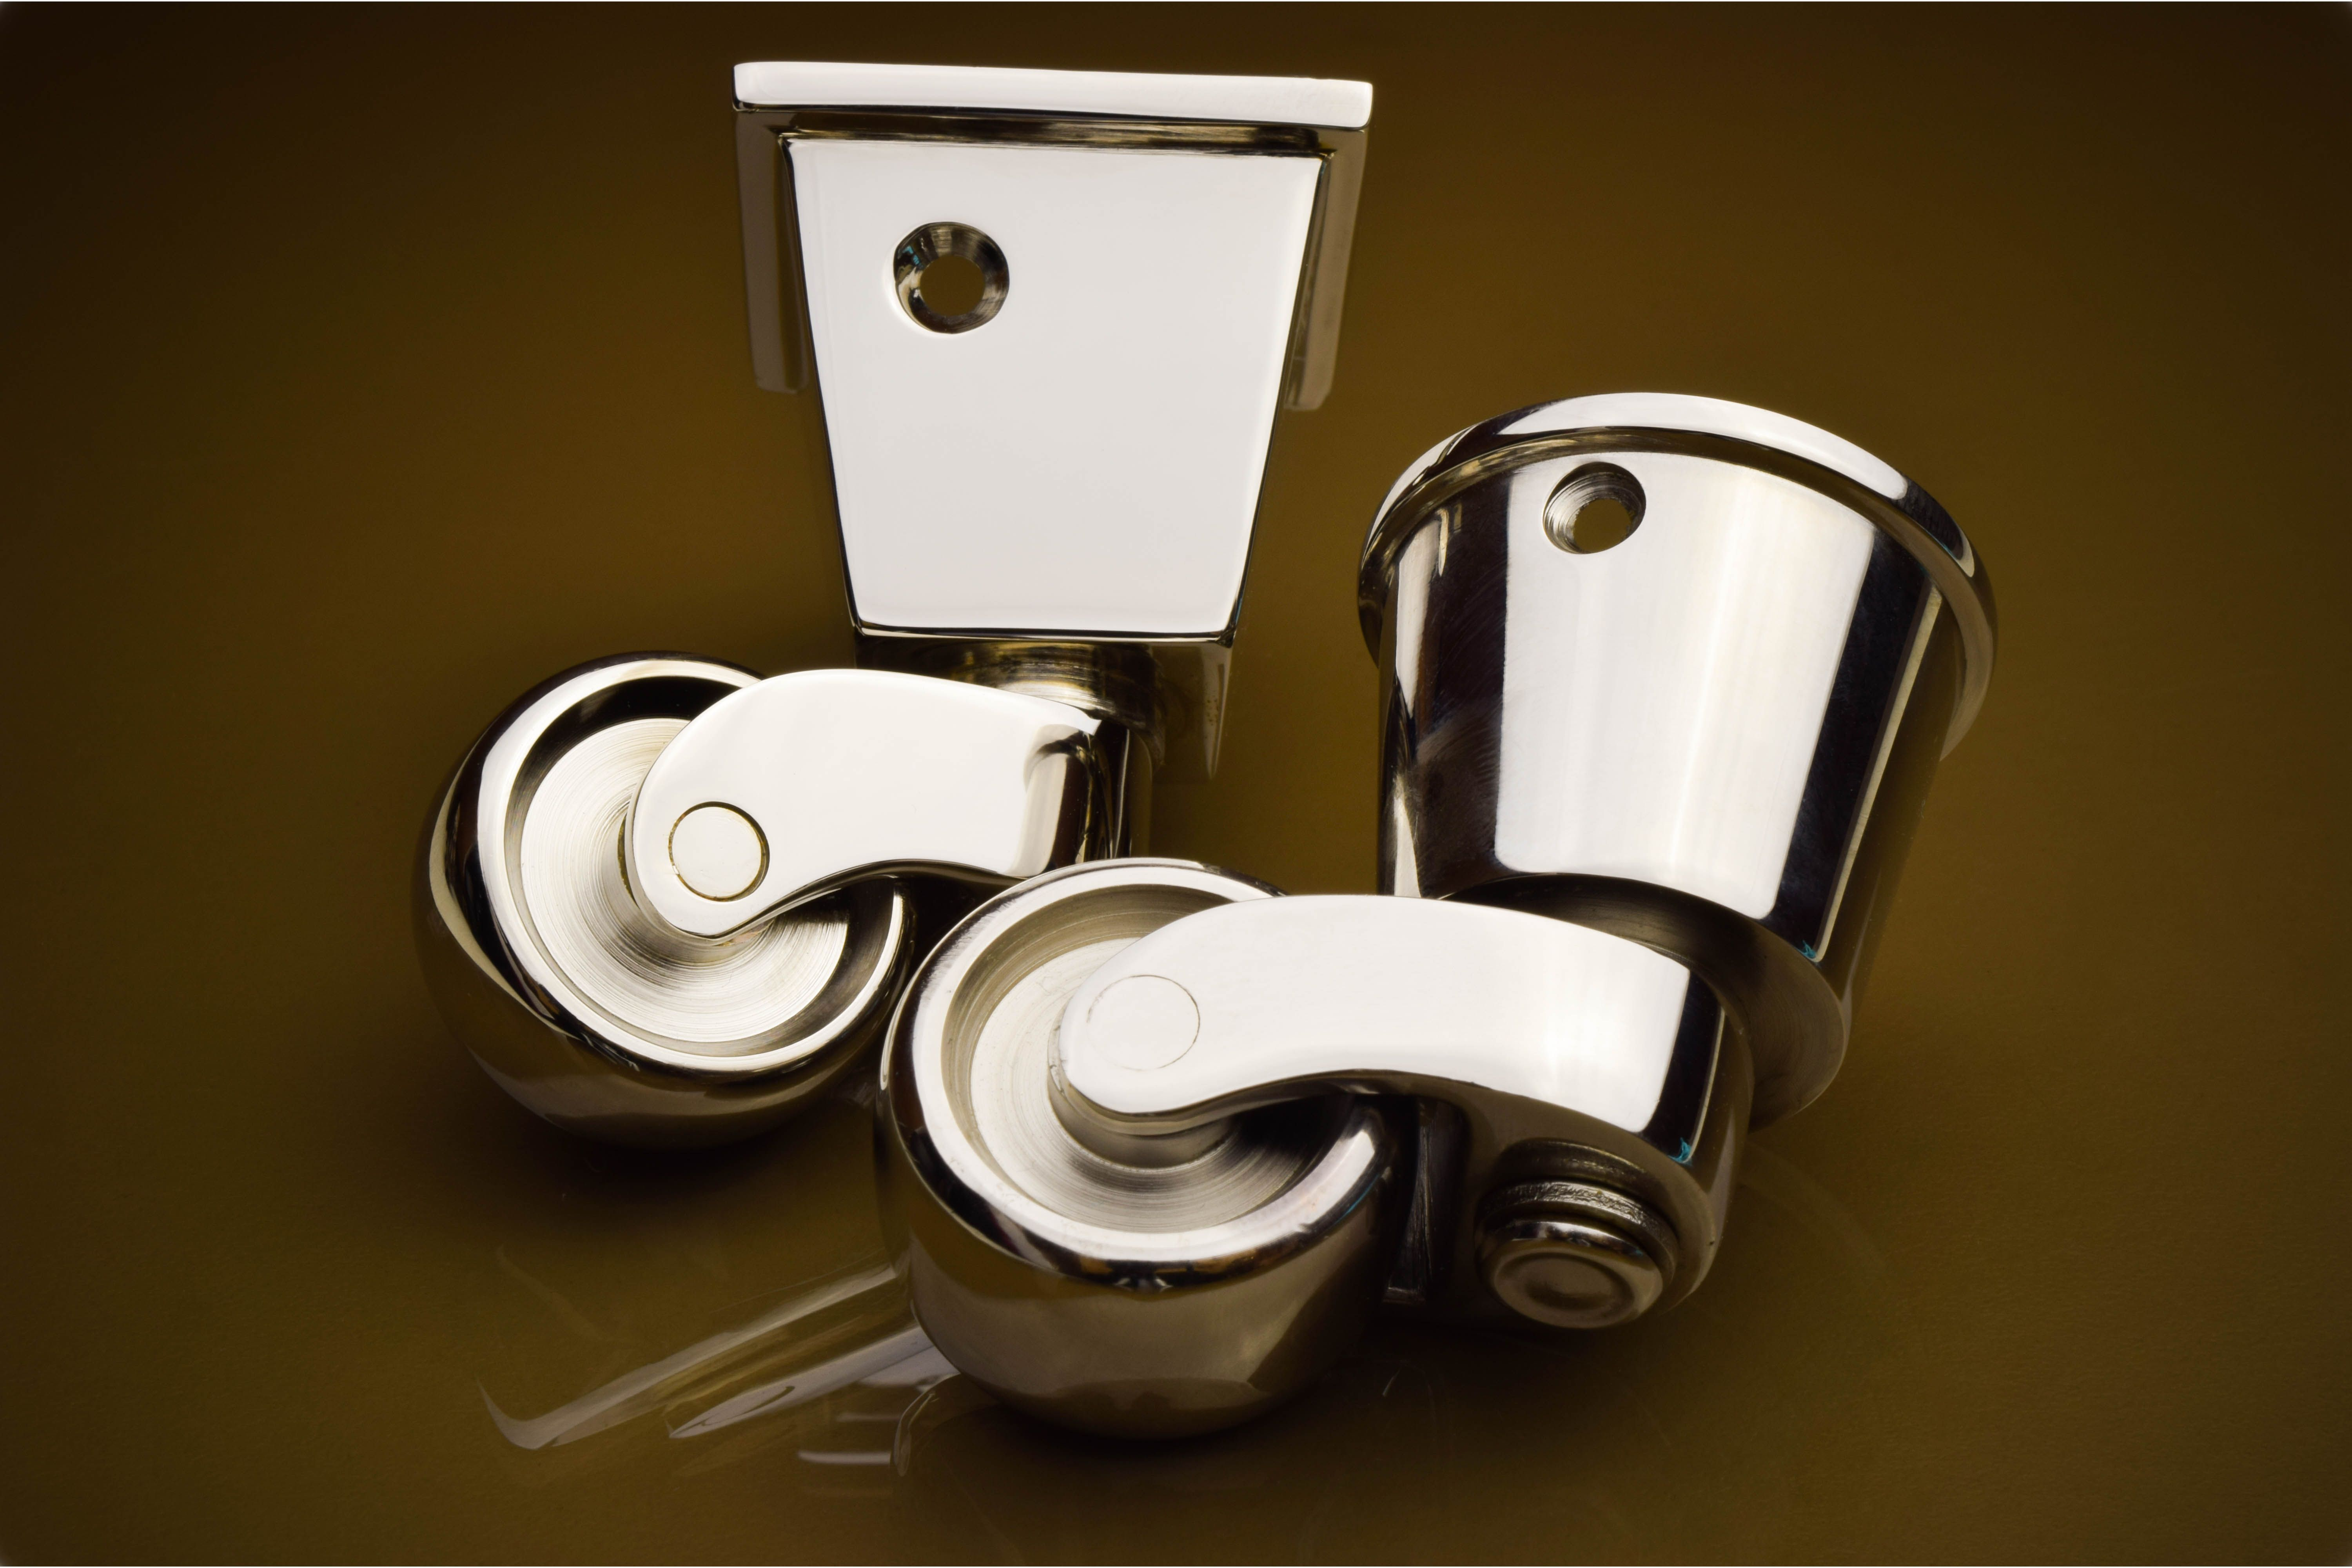 Square Cup Casters And Round Cup Casters Featured In Our Polished